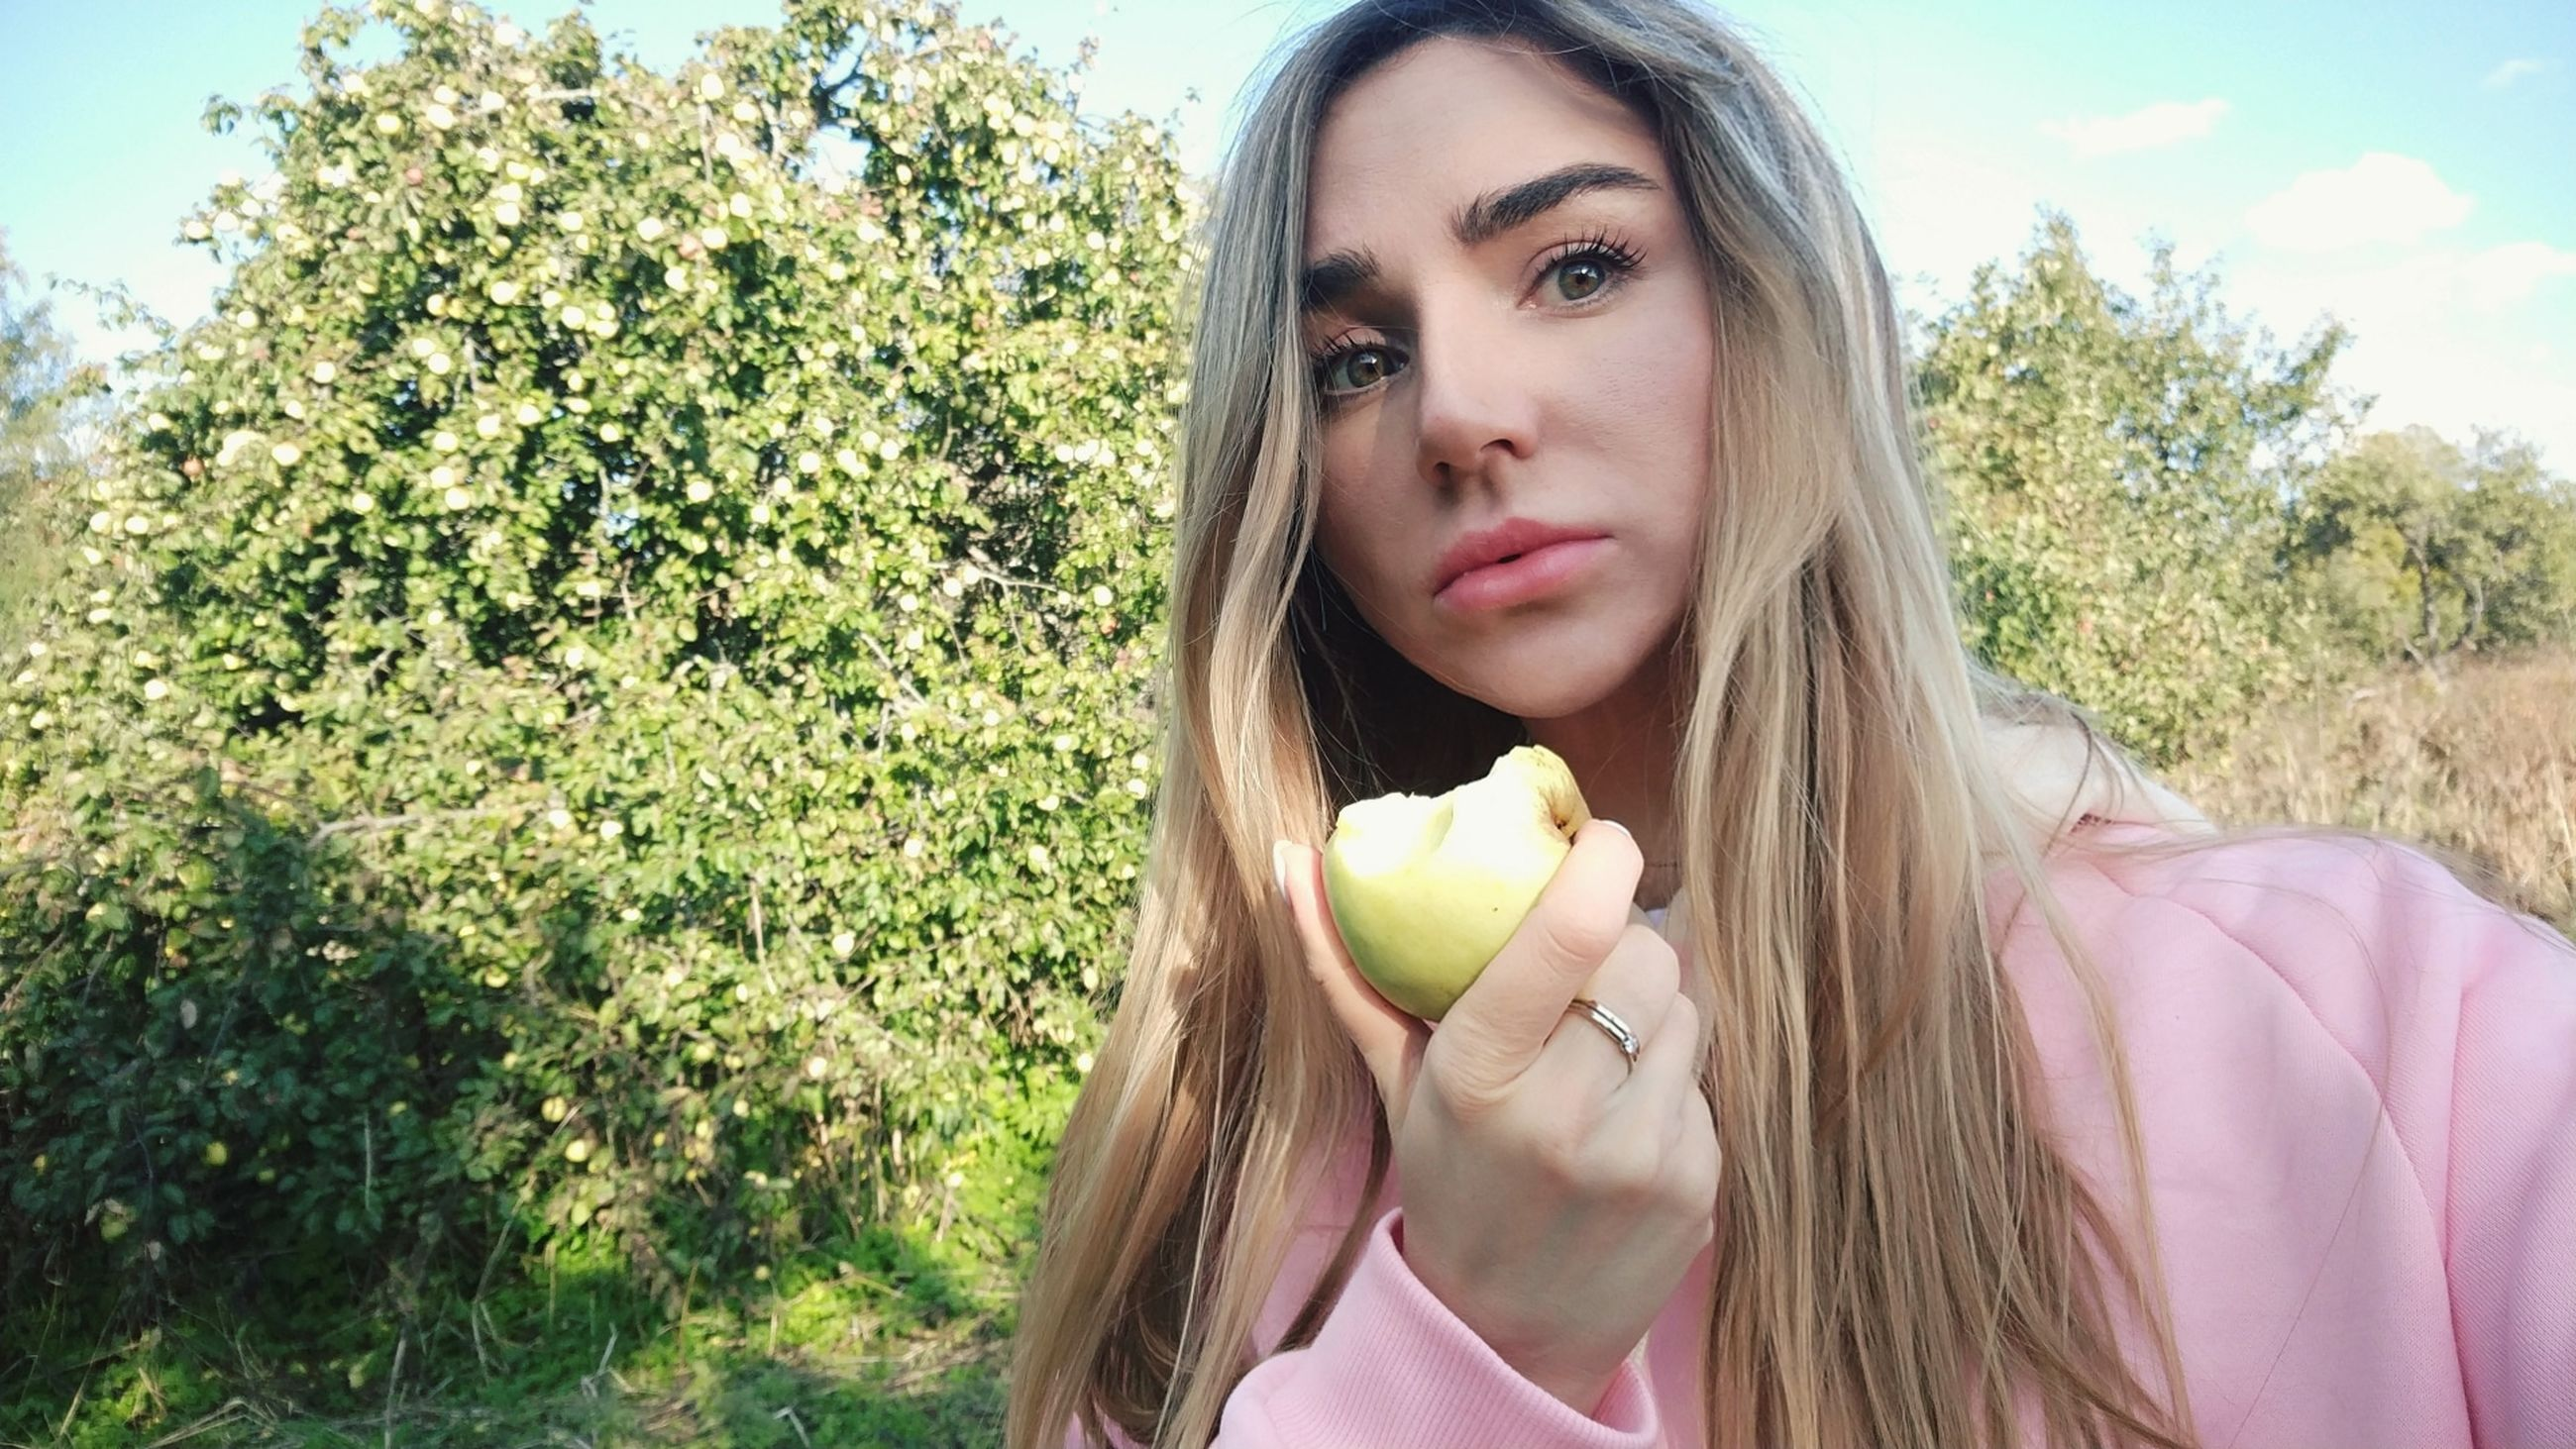 portrait, plant, real people, fruit, front view, one person, young women, leisure activity, hair, young adult, lifestyles, food and drink, looking at camera, healthy eating, headshot, day, long hair, food, holding, hairstyle, beautiful woman, outdoors